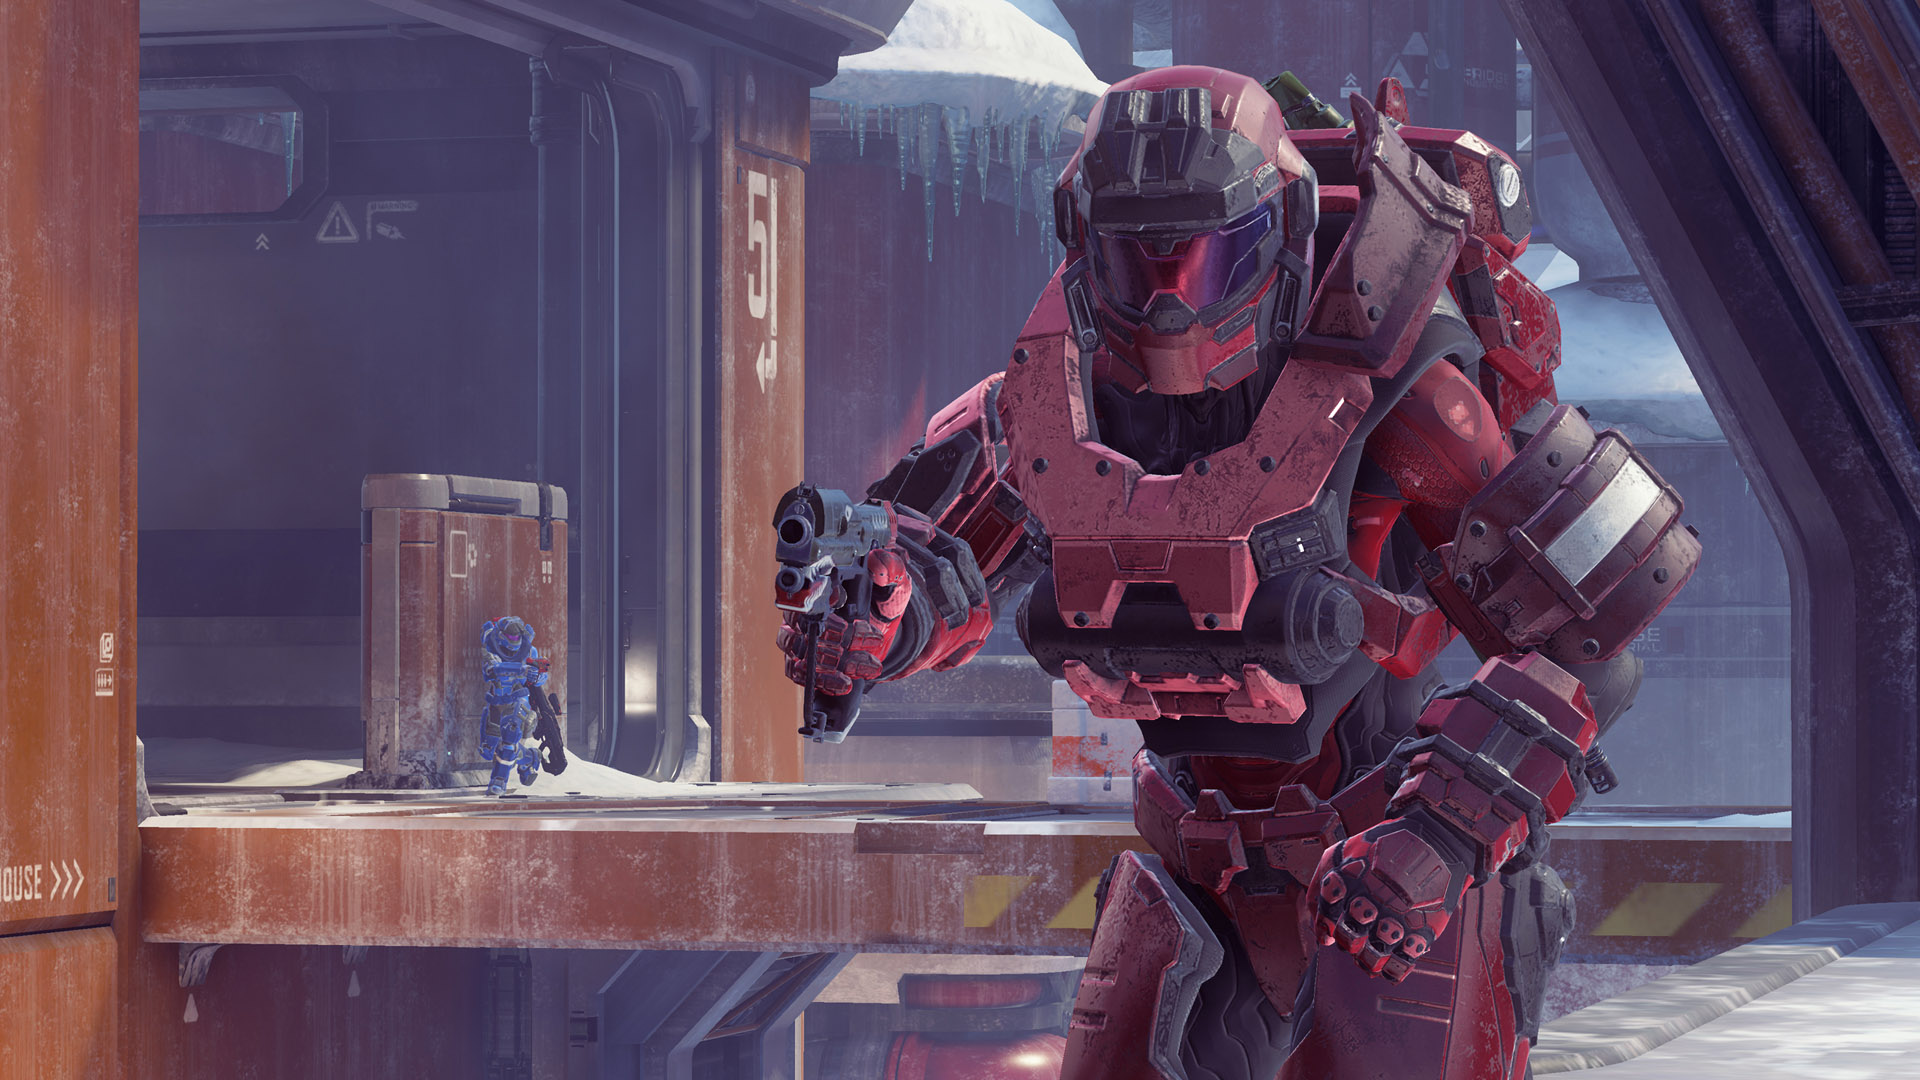 Memories of Reach | Games | Halo - Official Site